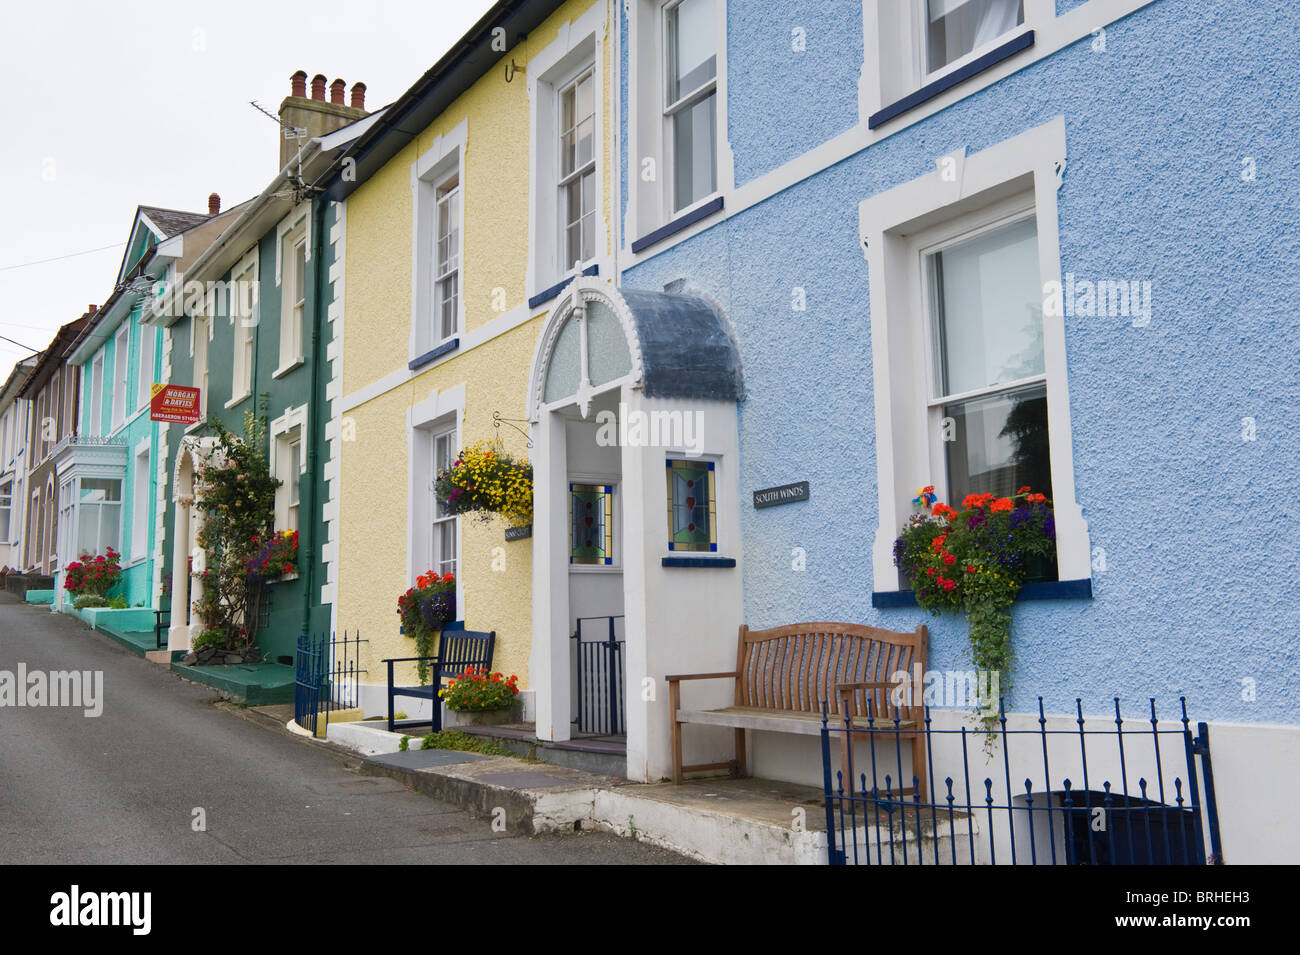 House for sale in terrace of houses in the coastal town of New Quay Ceredigion West Wales UK - Stock Image